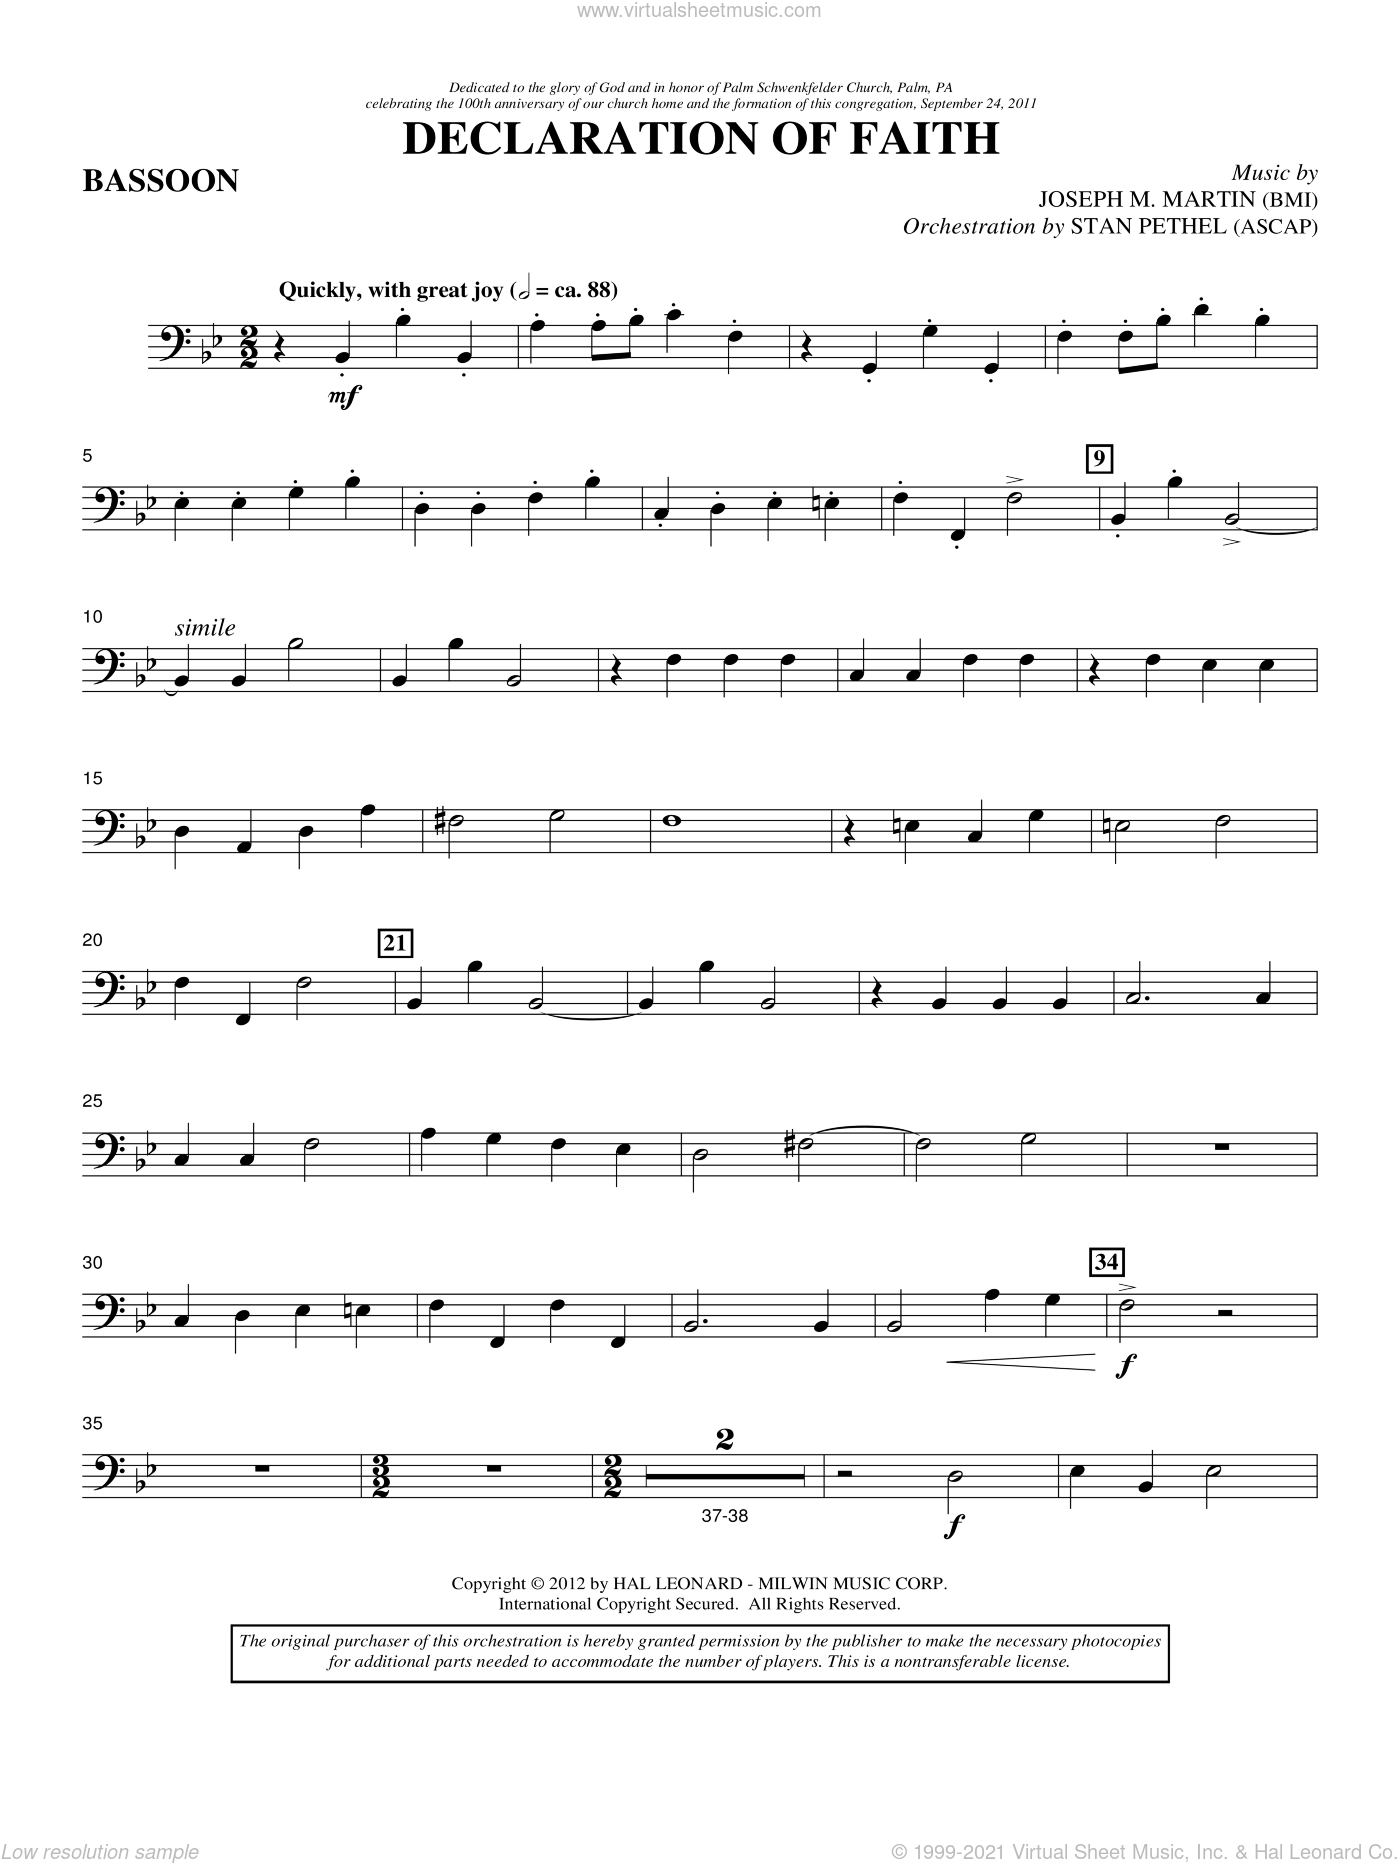 Declaration Of Faith sheet music for orchestra/band (bassoon) by Joseph M. Martin